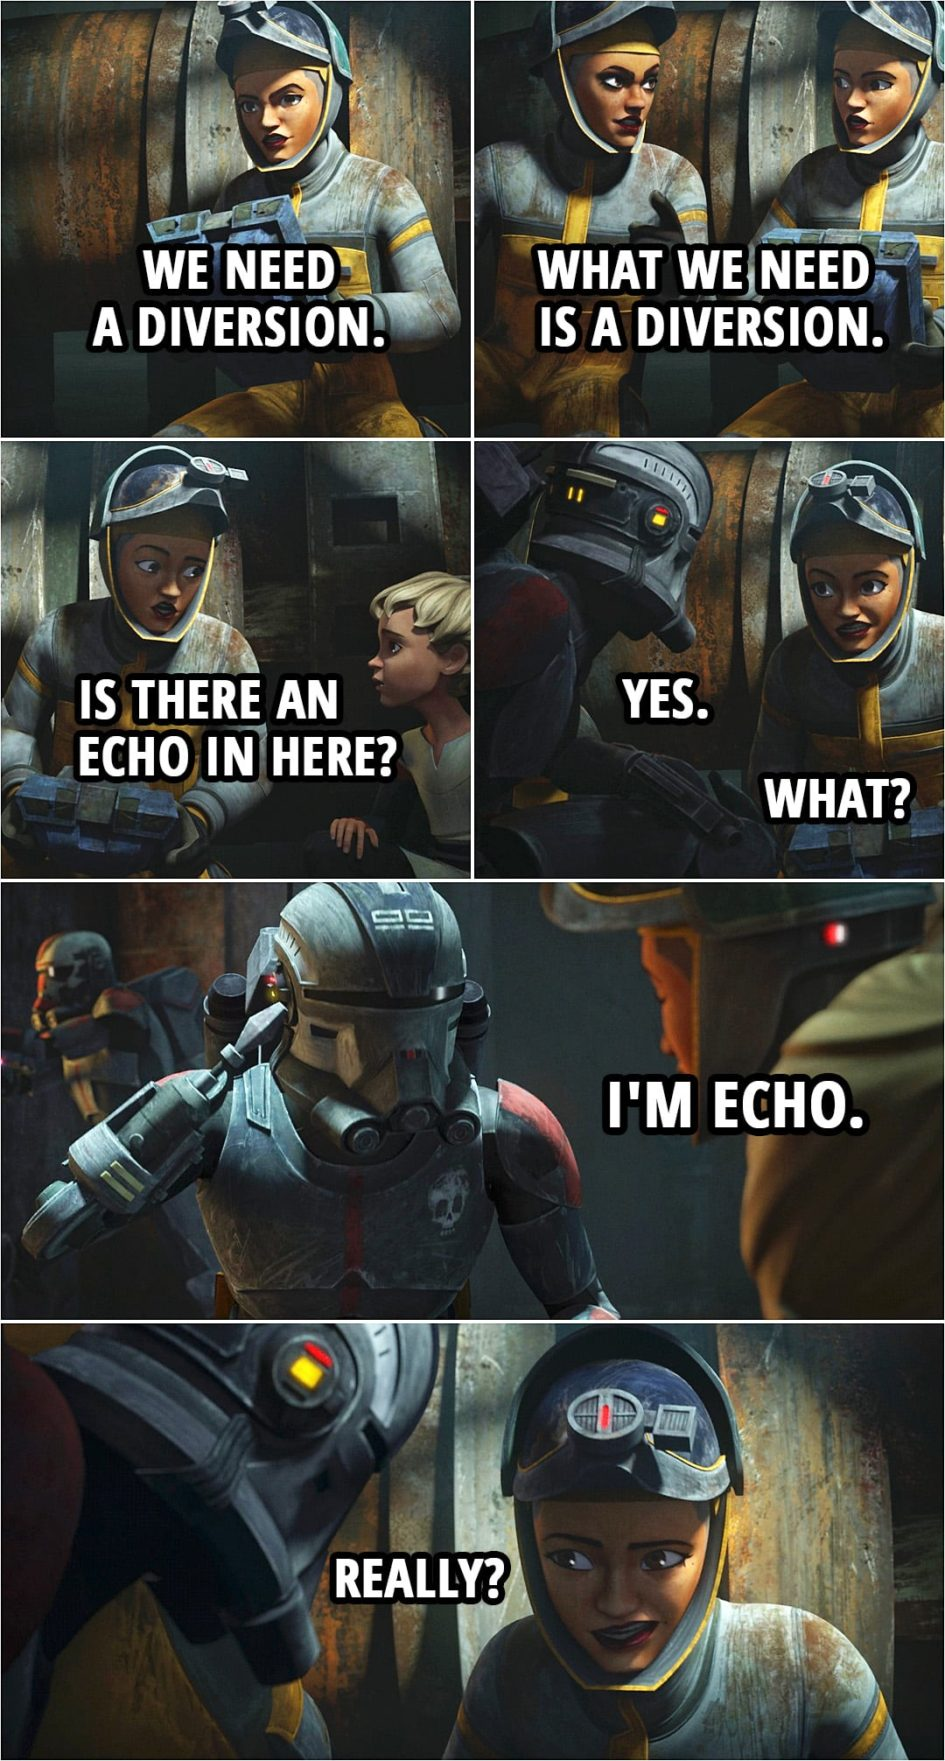 Quote from Star Wars: The Bad Batch 1x06 | Trace Martez: We need a diversion. Rafa Martez: What we need is a diversion. Trace Martez: Is there an echo in here? Echo: Yes. Trace Martez: What? Echo: I'm Echo. Trace Martez: Really?